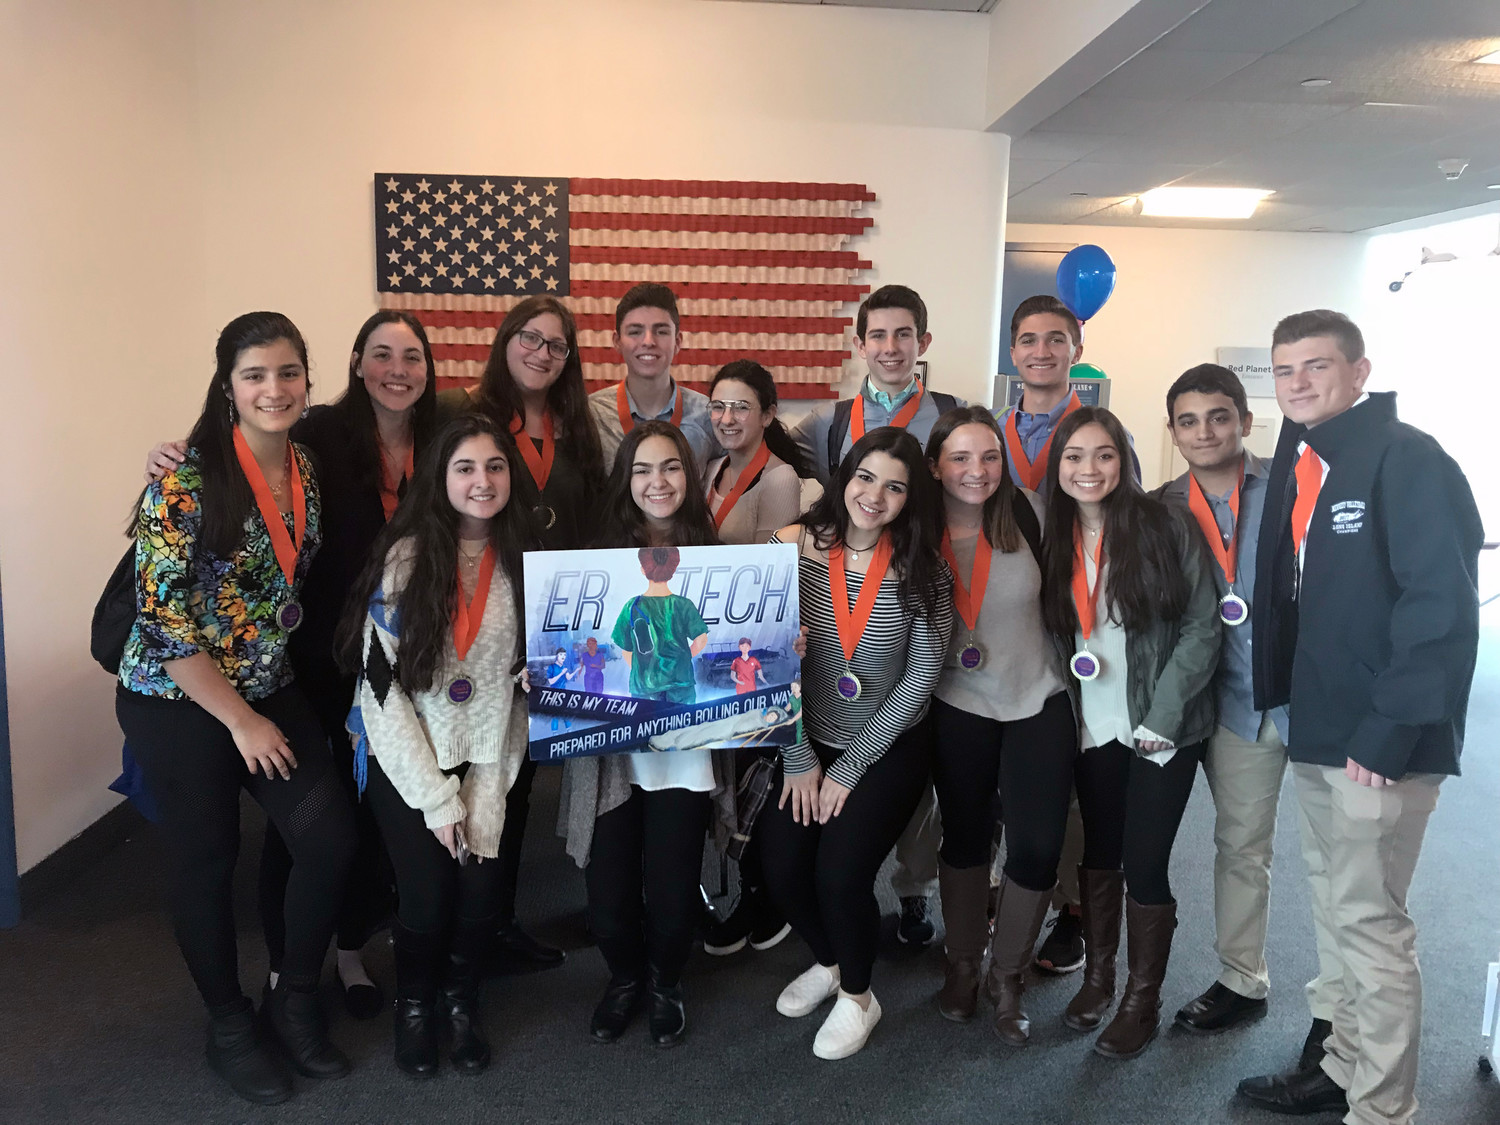 Kennedy's Advanced Science Research biology team won third place for their career advertisement poster, which represented the Emergency Department from North Shore-LIJ.